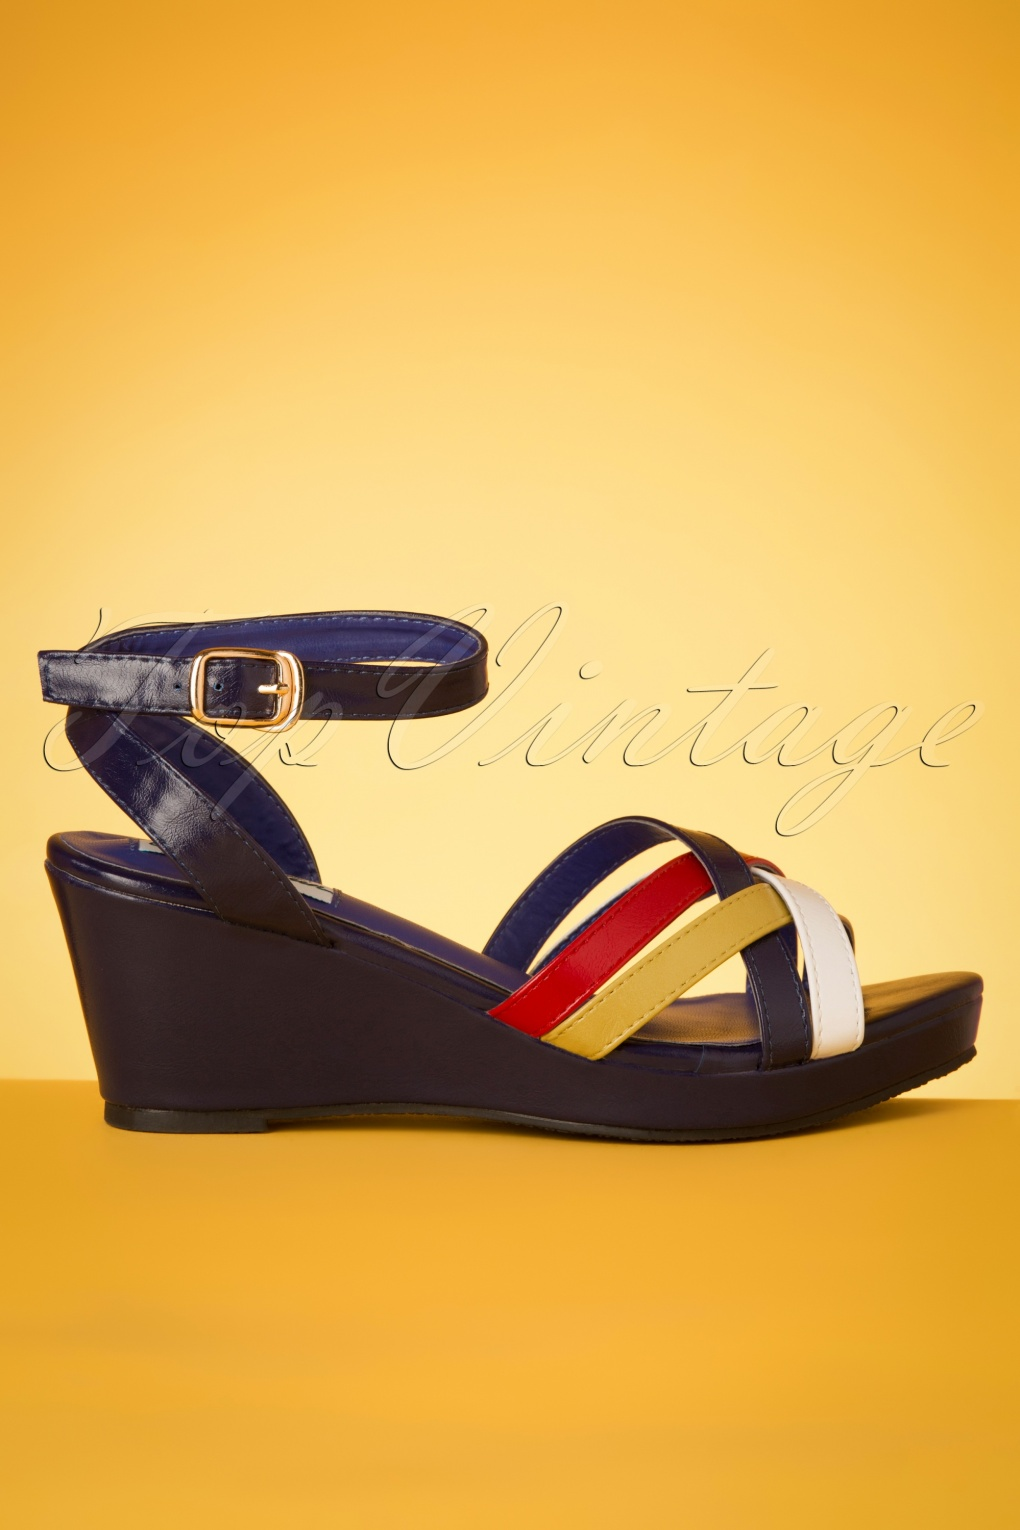 1960s Shoes: 8 Popular Shoe Styles 60s Nanda Wedge Sandals in Navy £38.00 AT vintagedancer.com